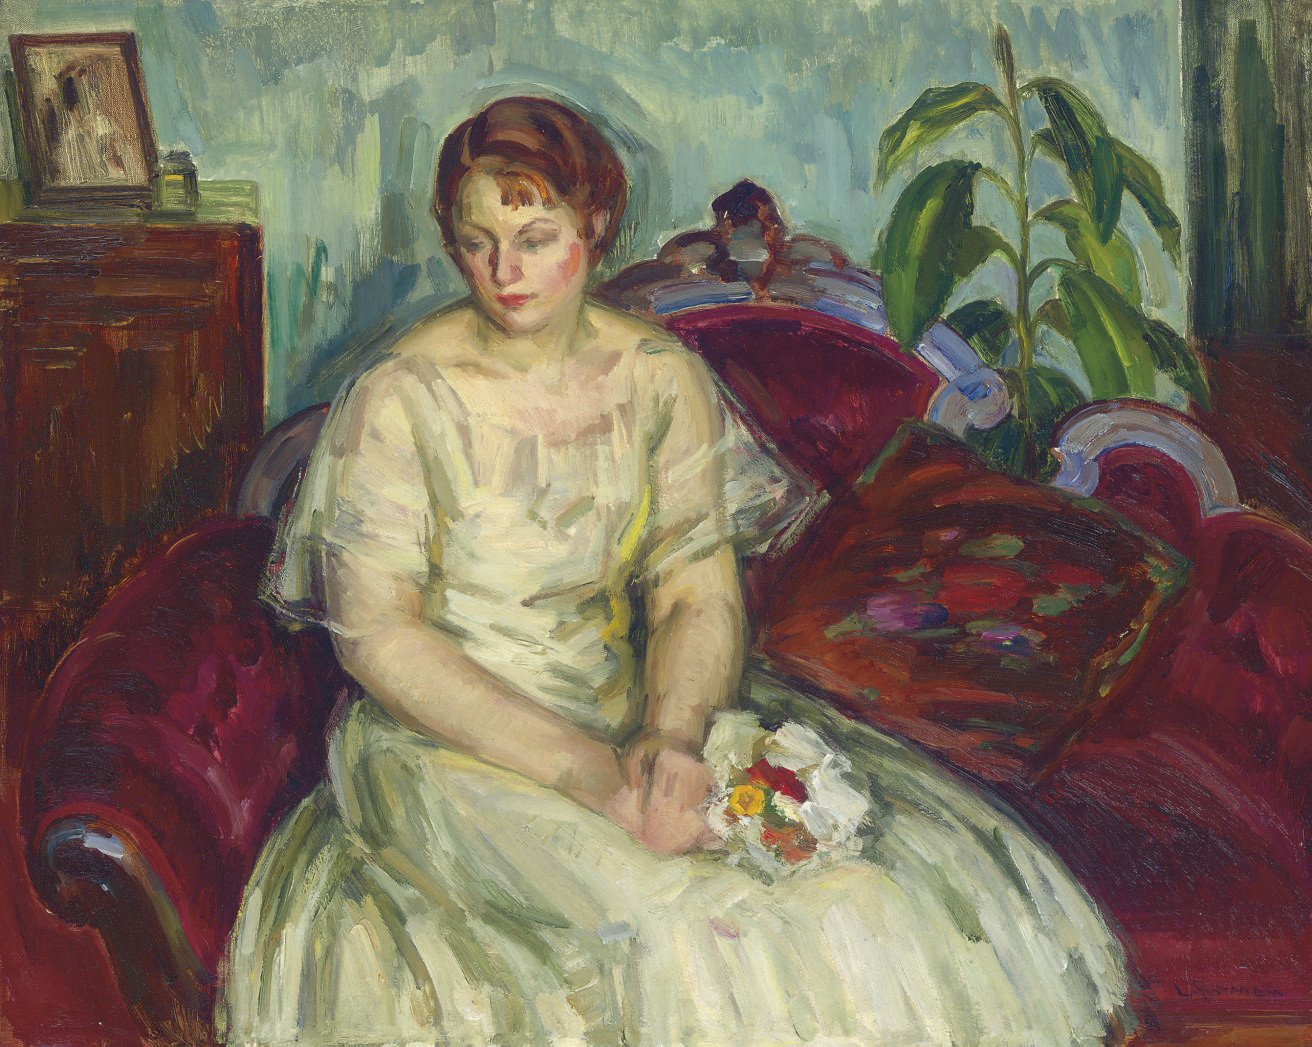 Woman in White Gown